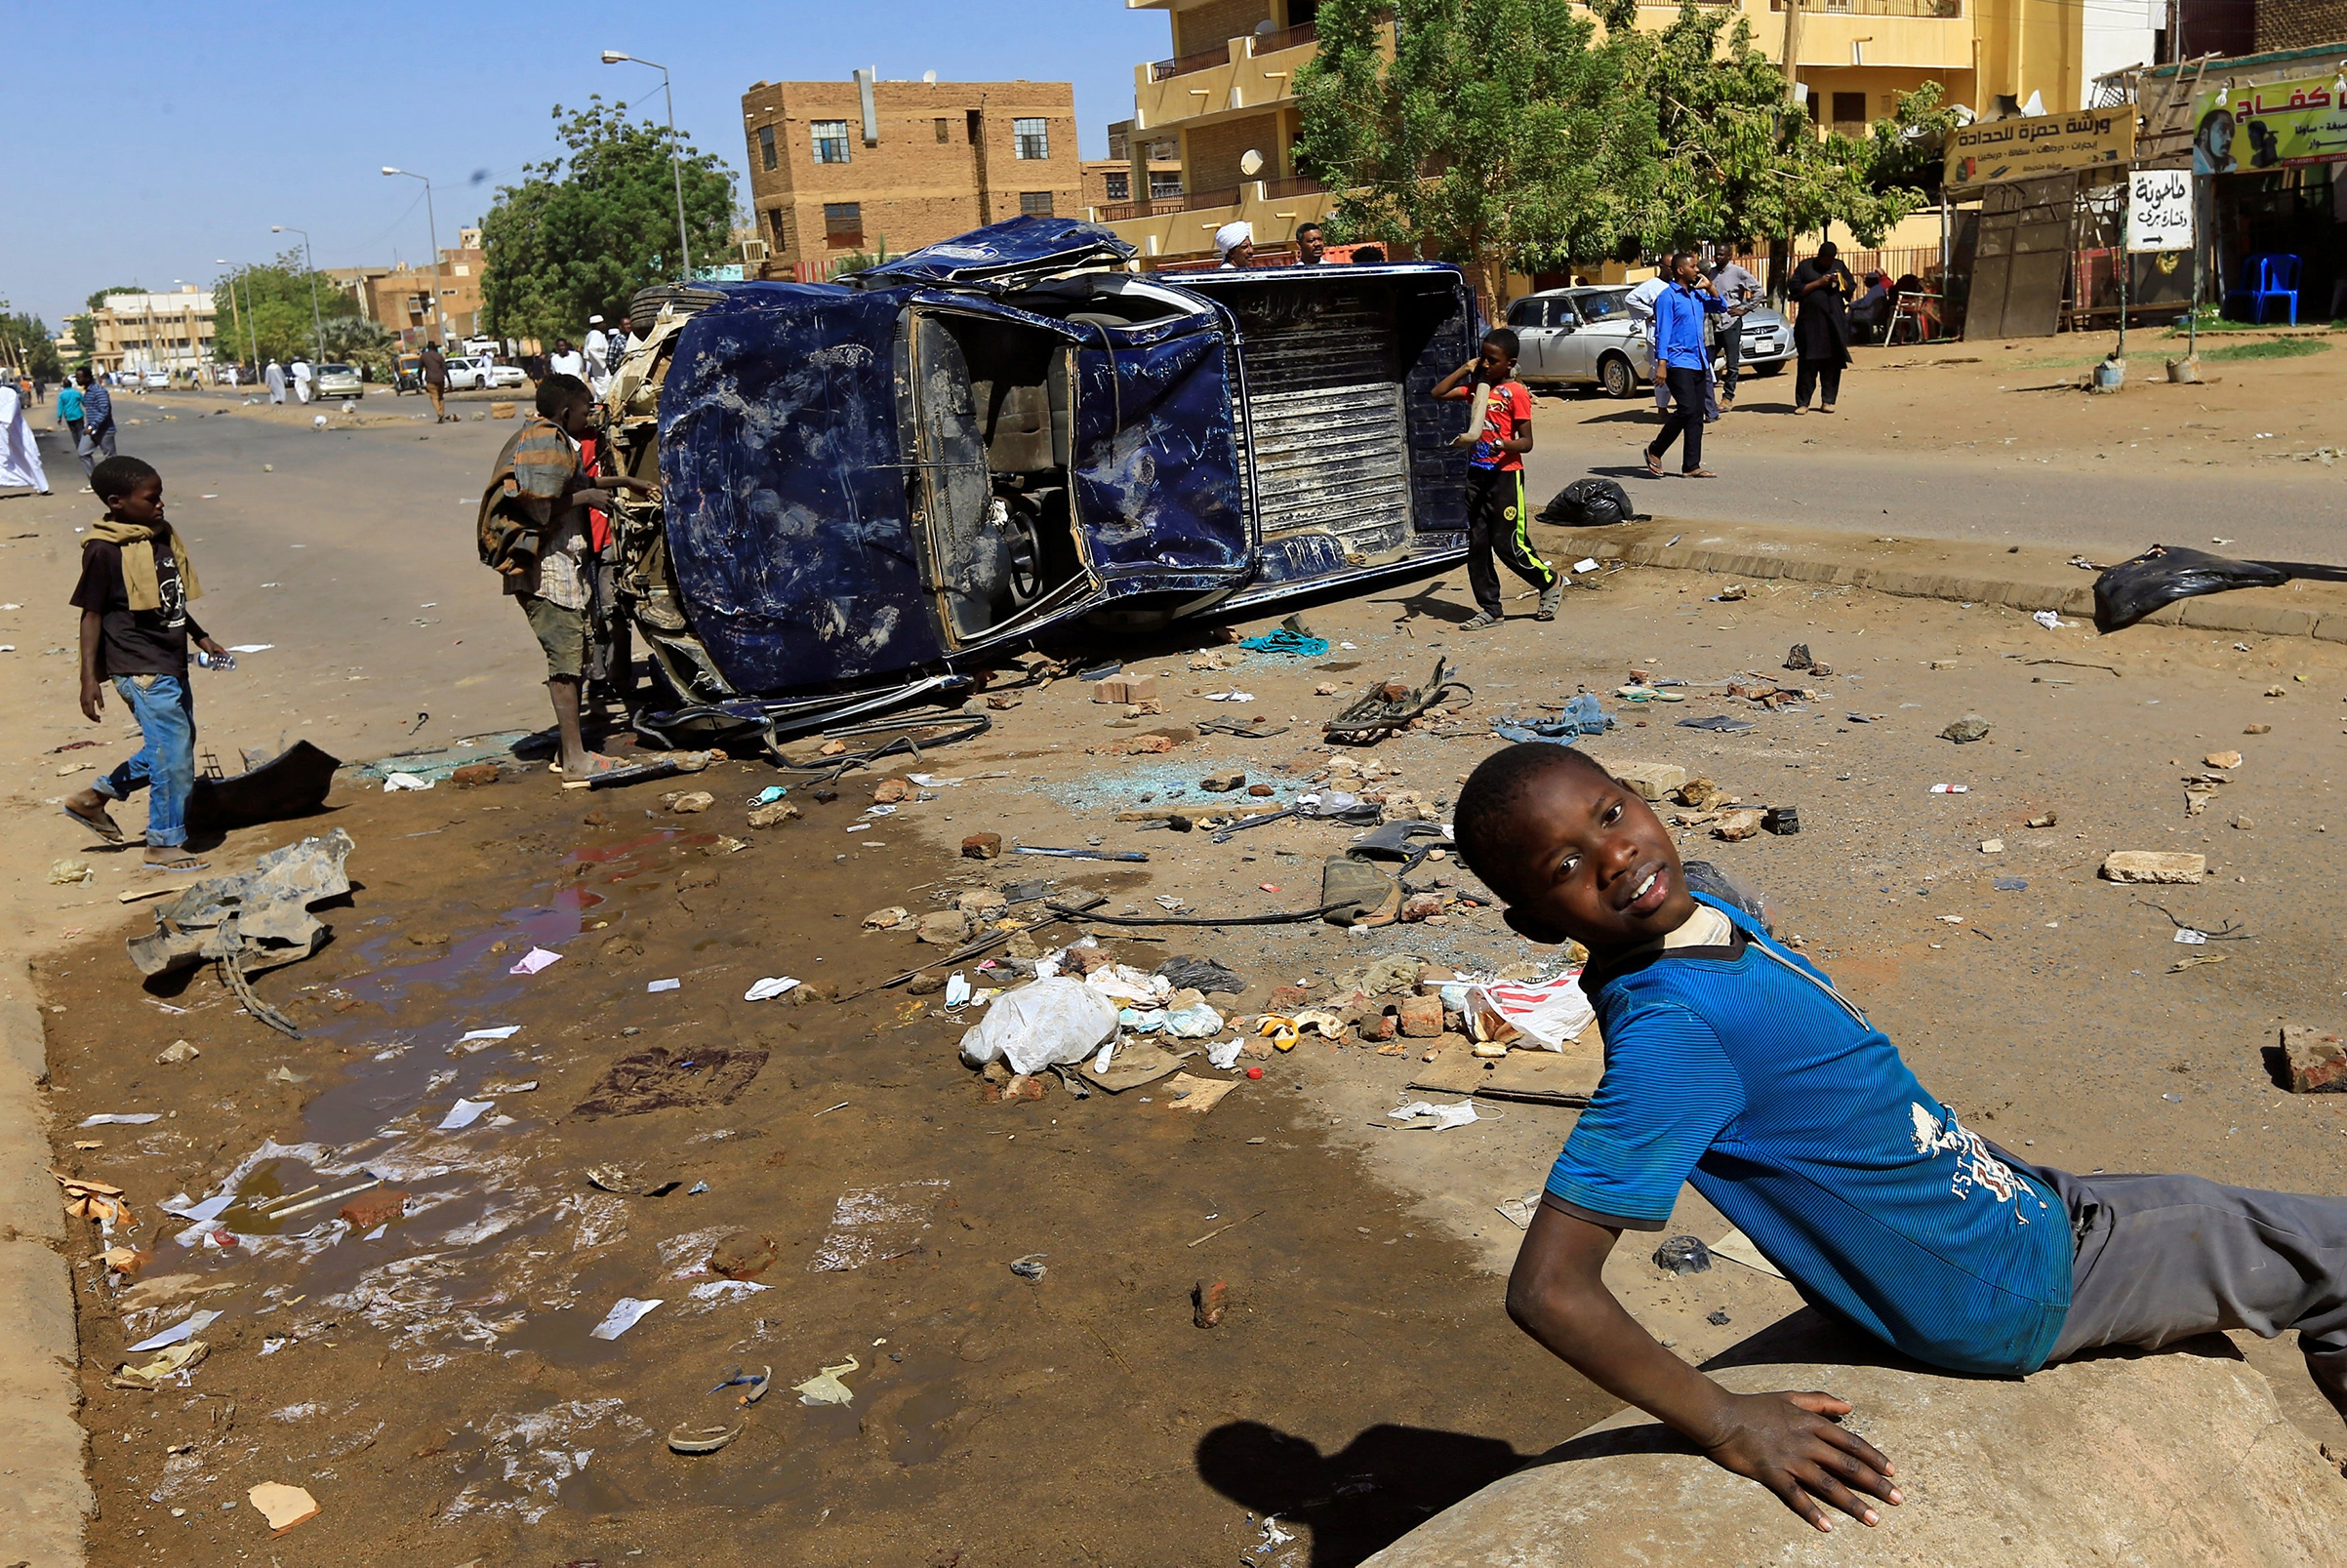 Children play near a police car flipped over and damaged by mourners near the home of a demonstrator who died of a gunshot wound sustained during anti-government protests in Khartoum, Sudan January 18, 2019.